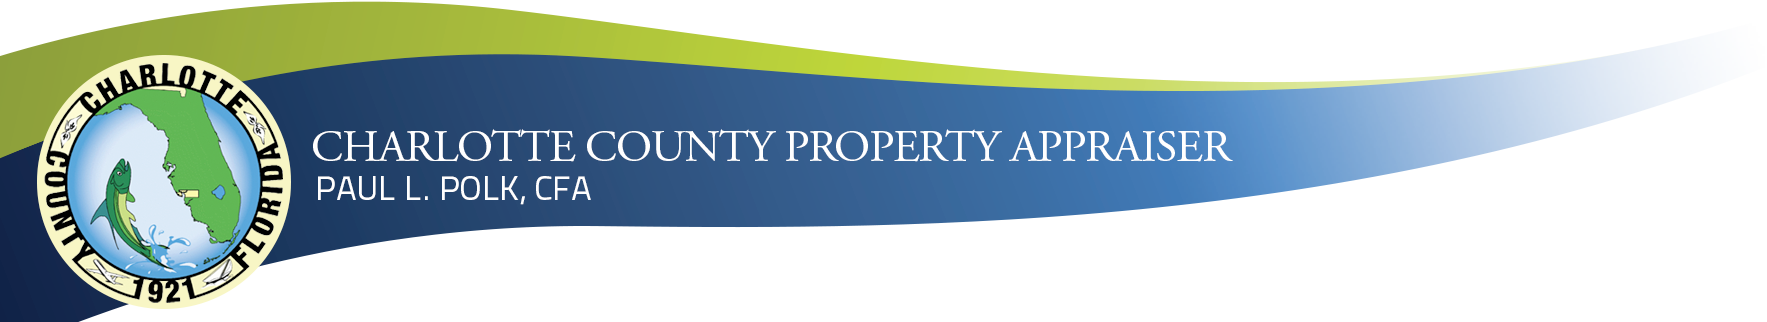 Charlotte County Property Appraiser - Paul L. Polk, CFA